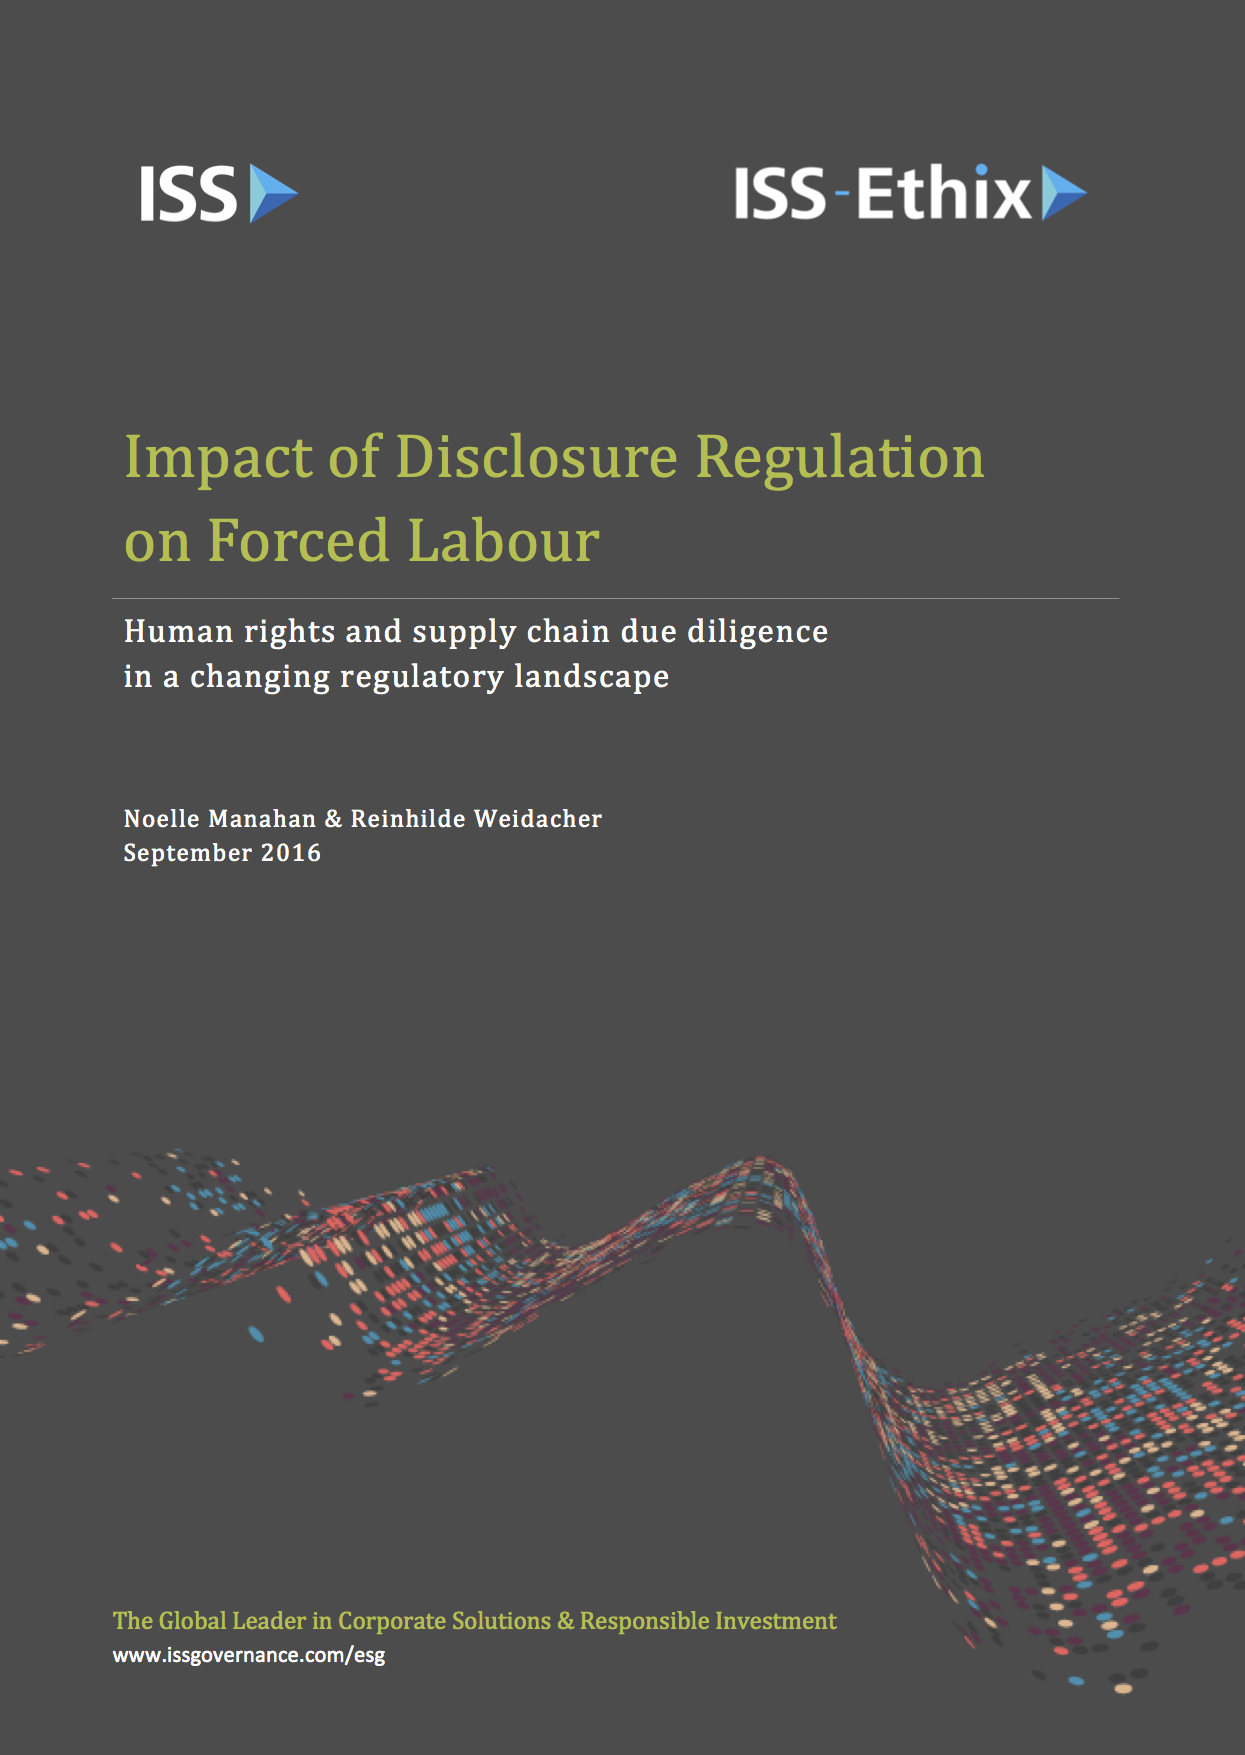 Impact of Disclosure Regulation on Forced Labour